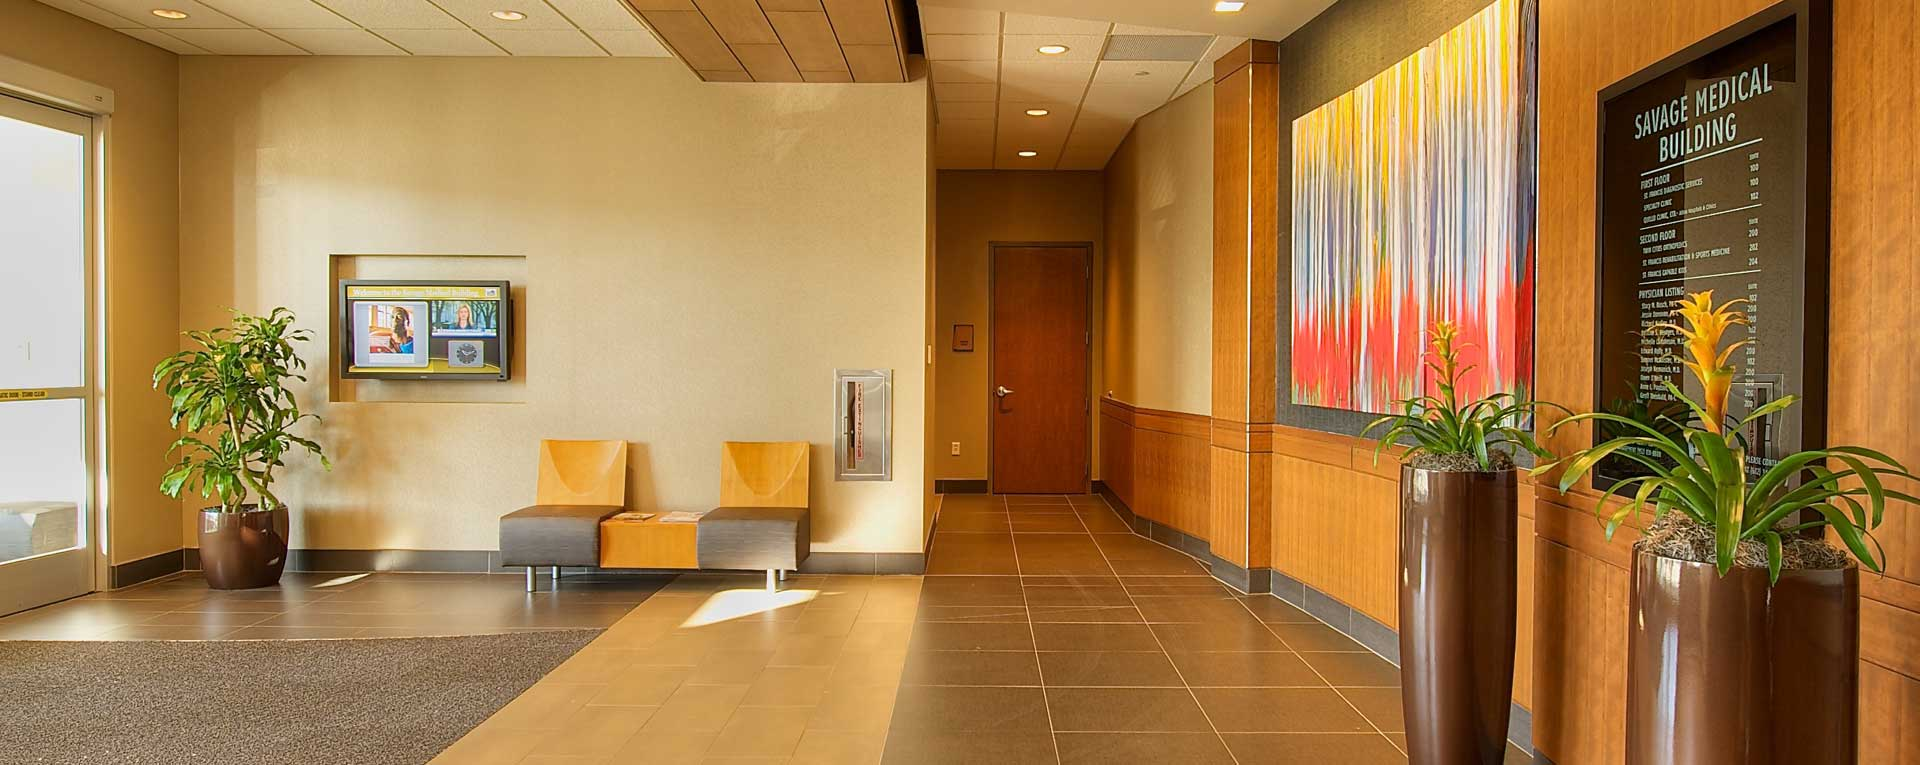 Savage Medical Building Lobby - Savage, MN